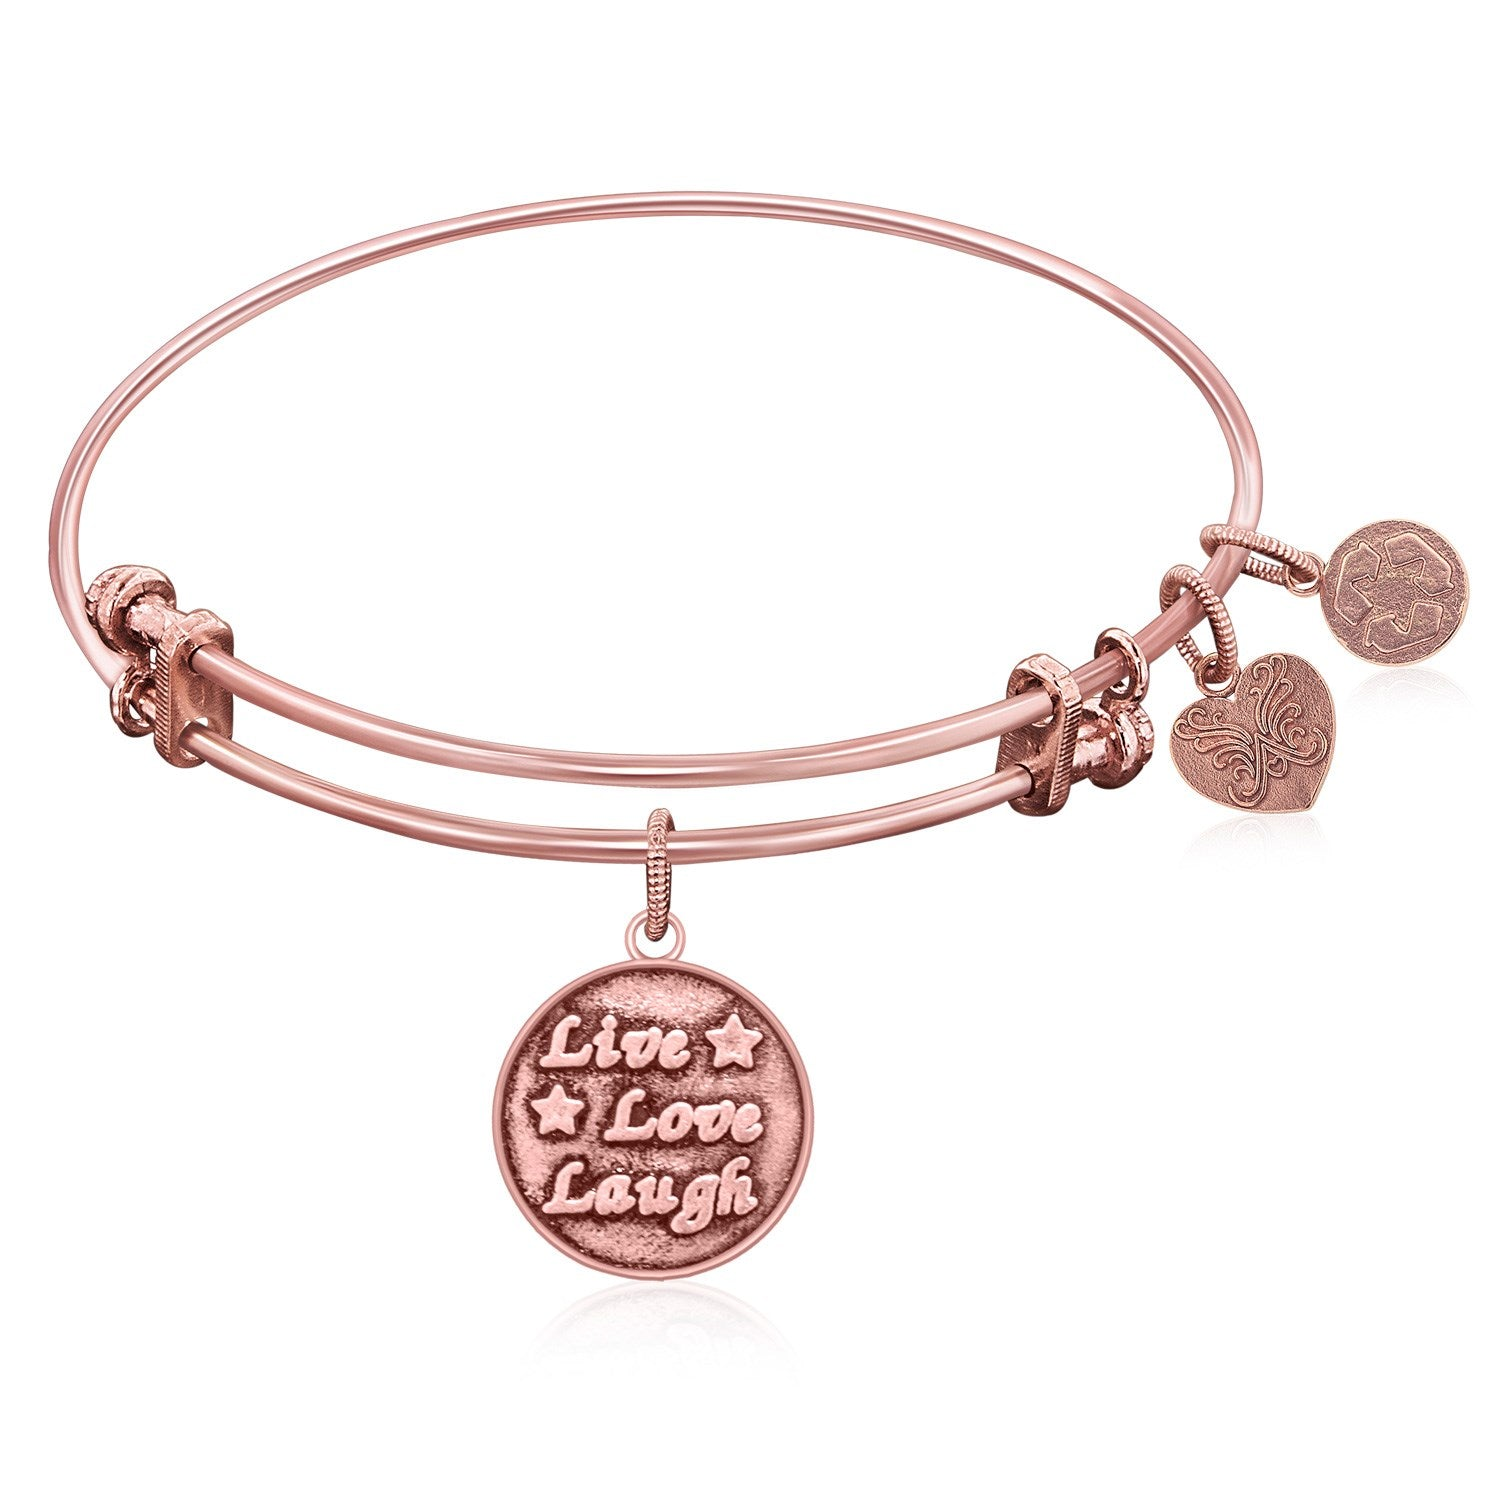 Luxury London Style Original Expandable Bangle in Pink Tone Brass with Joy of Life Symbol